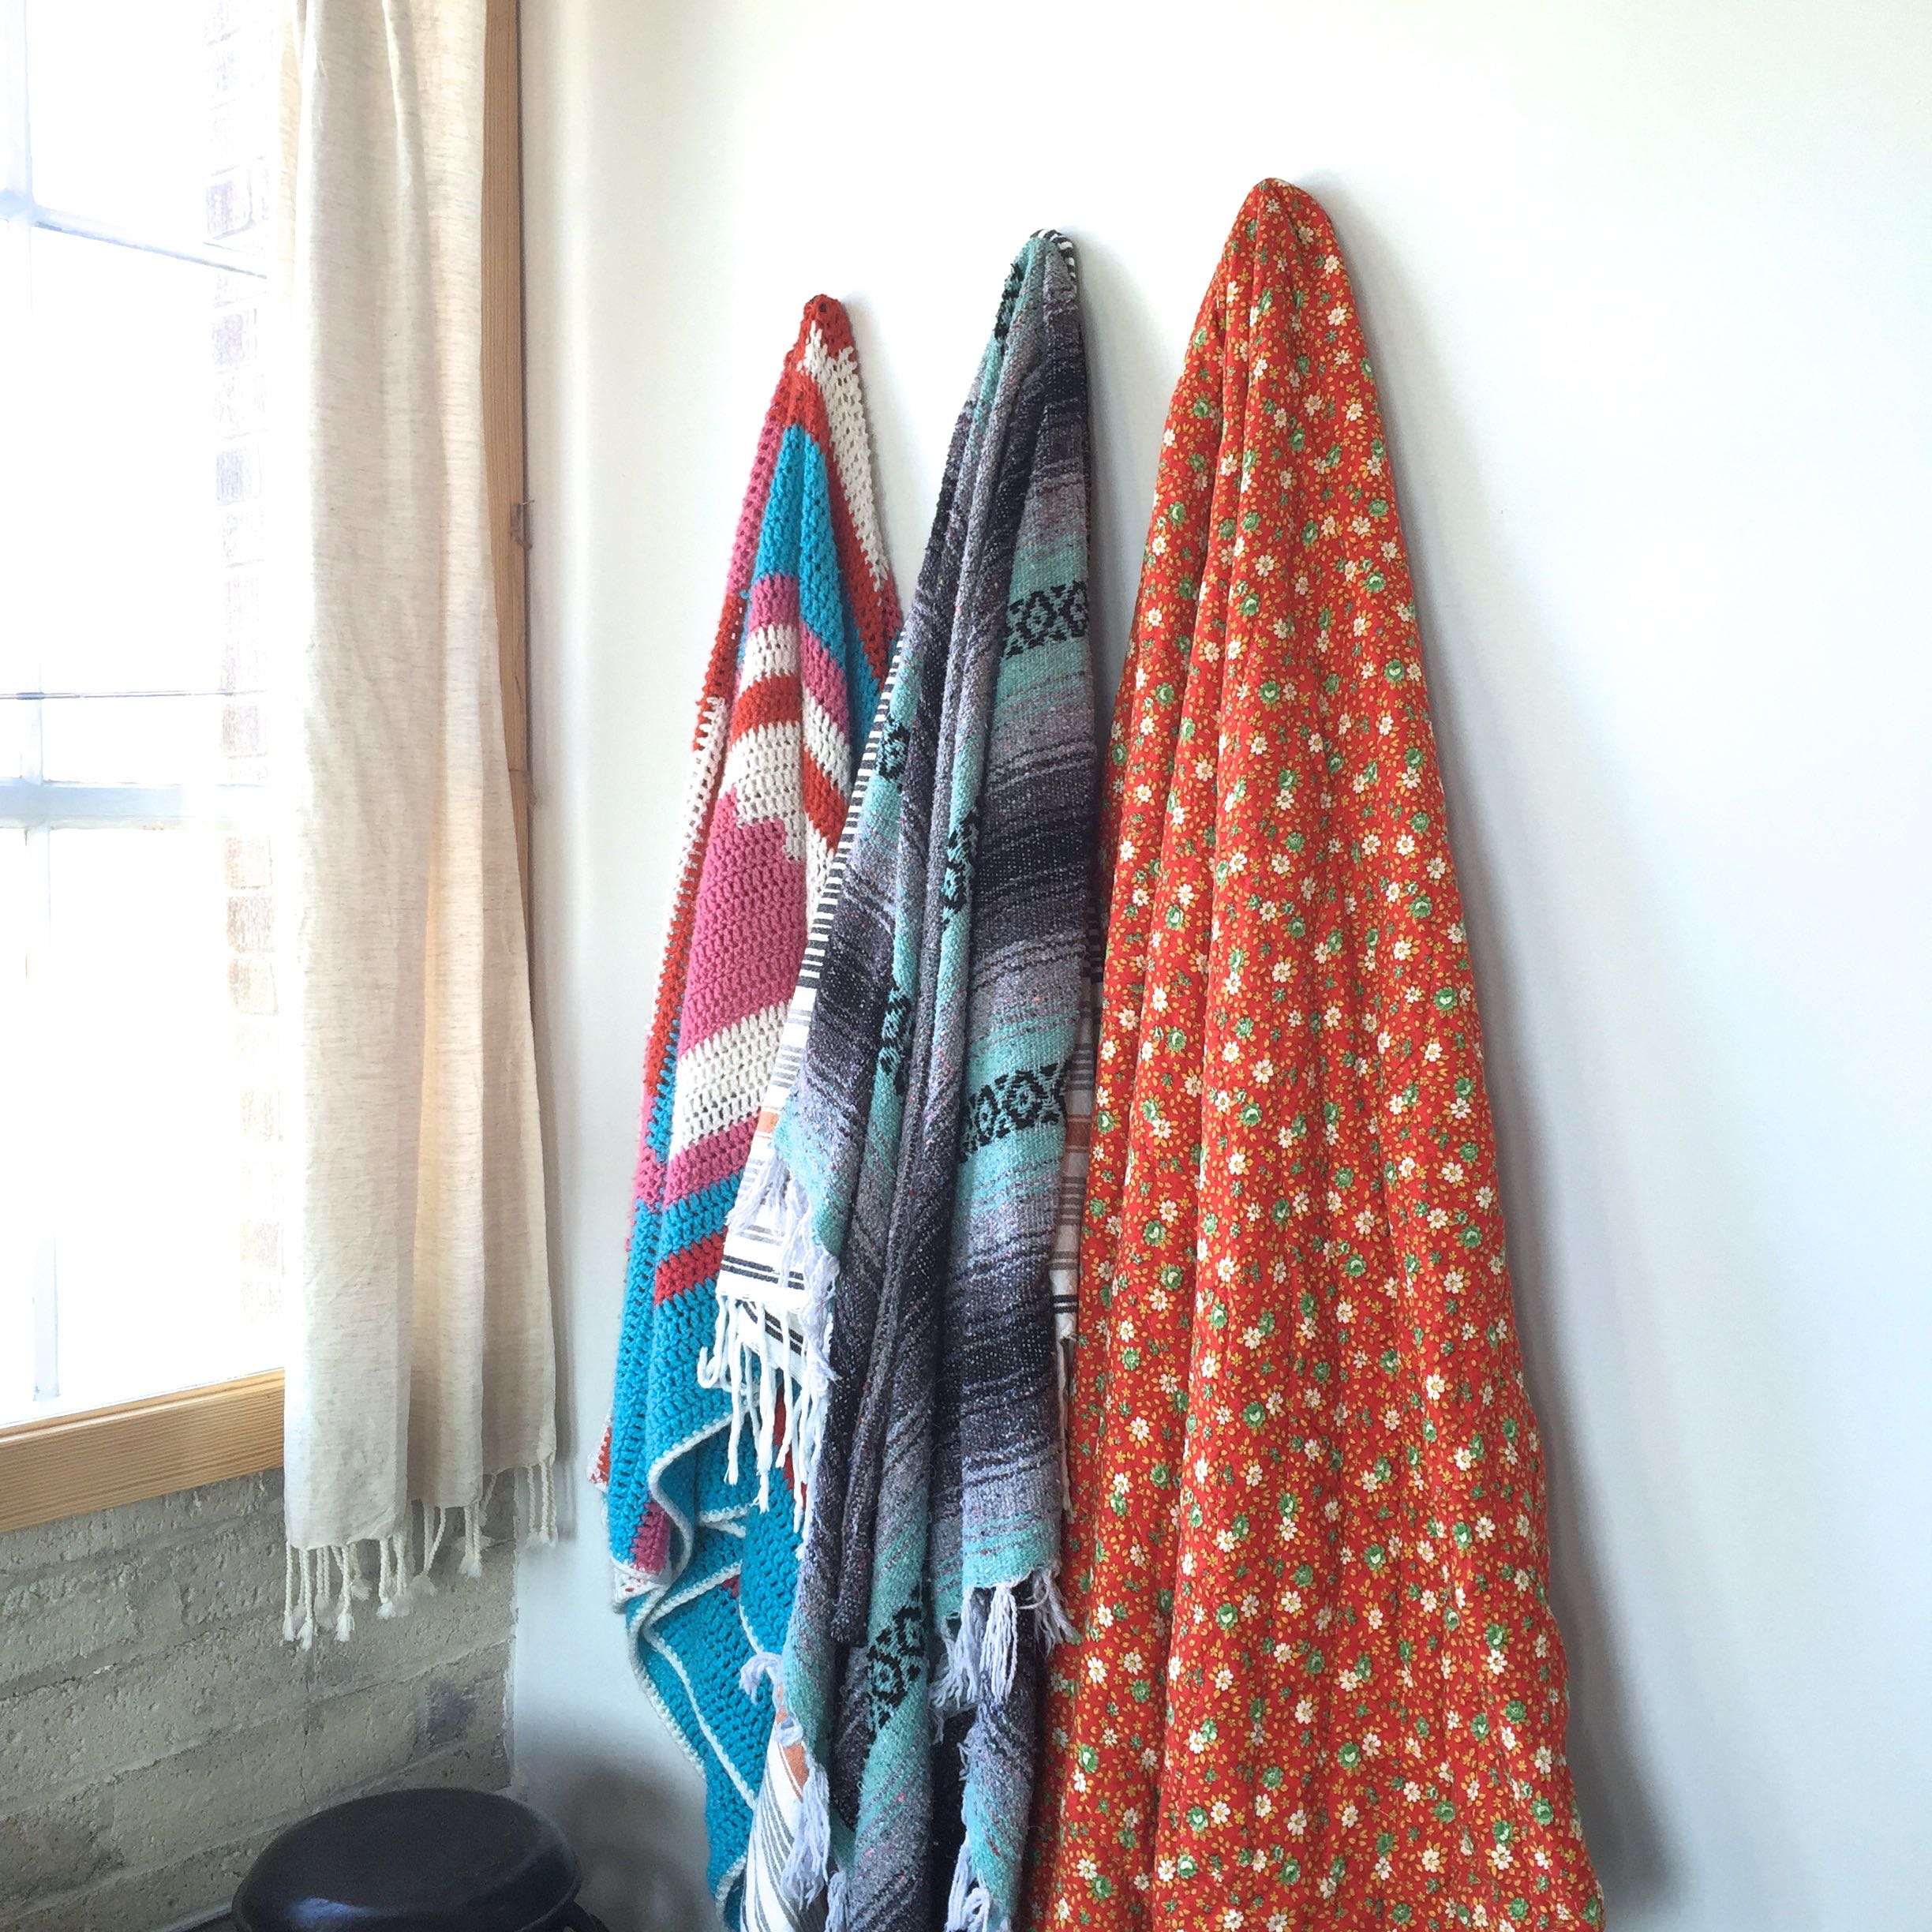 Clavo nails help in organizing a collection of vintage boho throws.